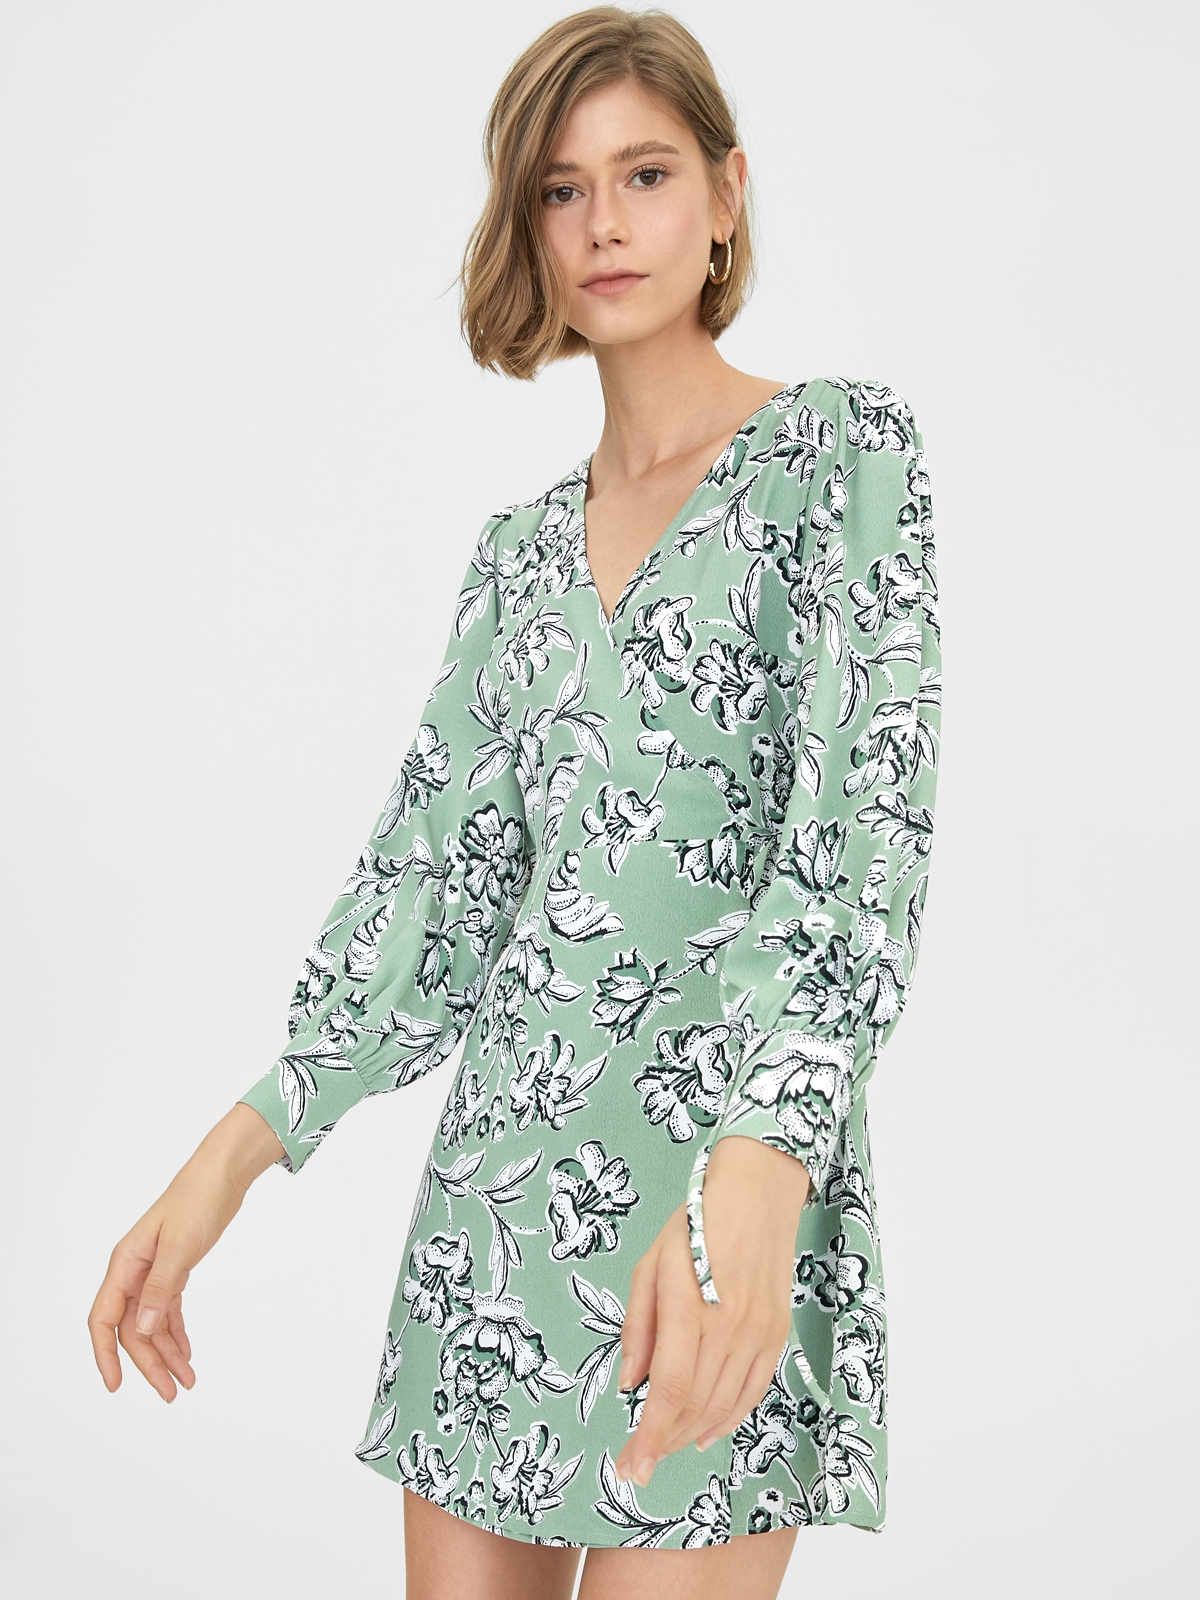 Abstract Floral Print Dress Green